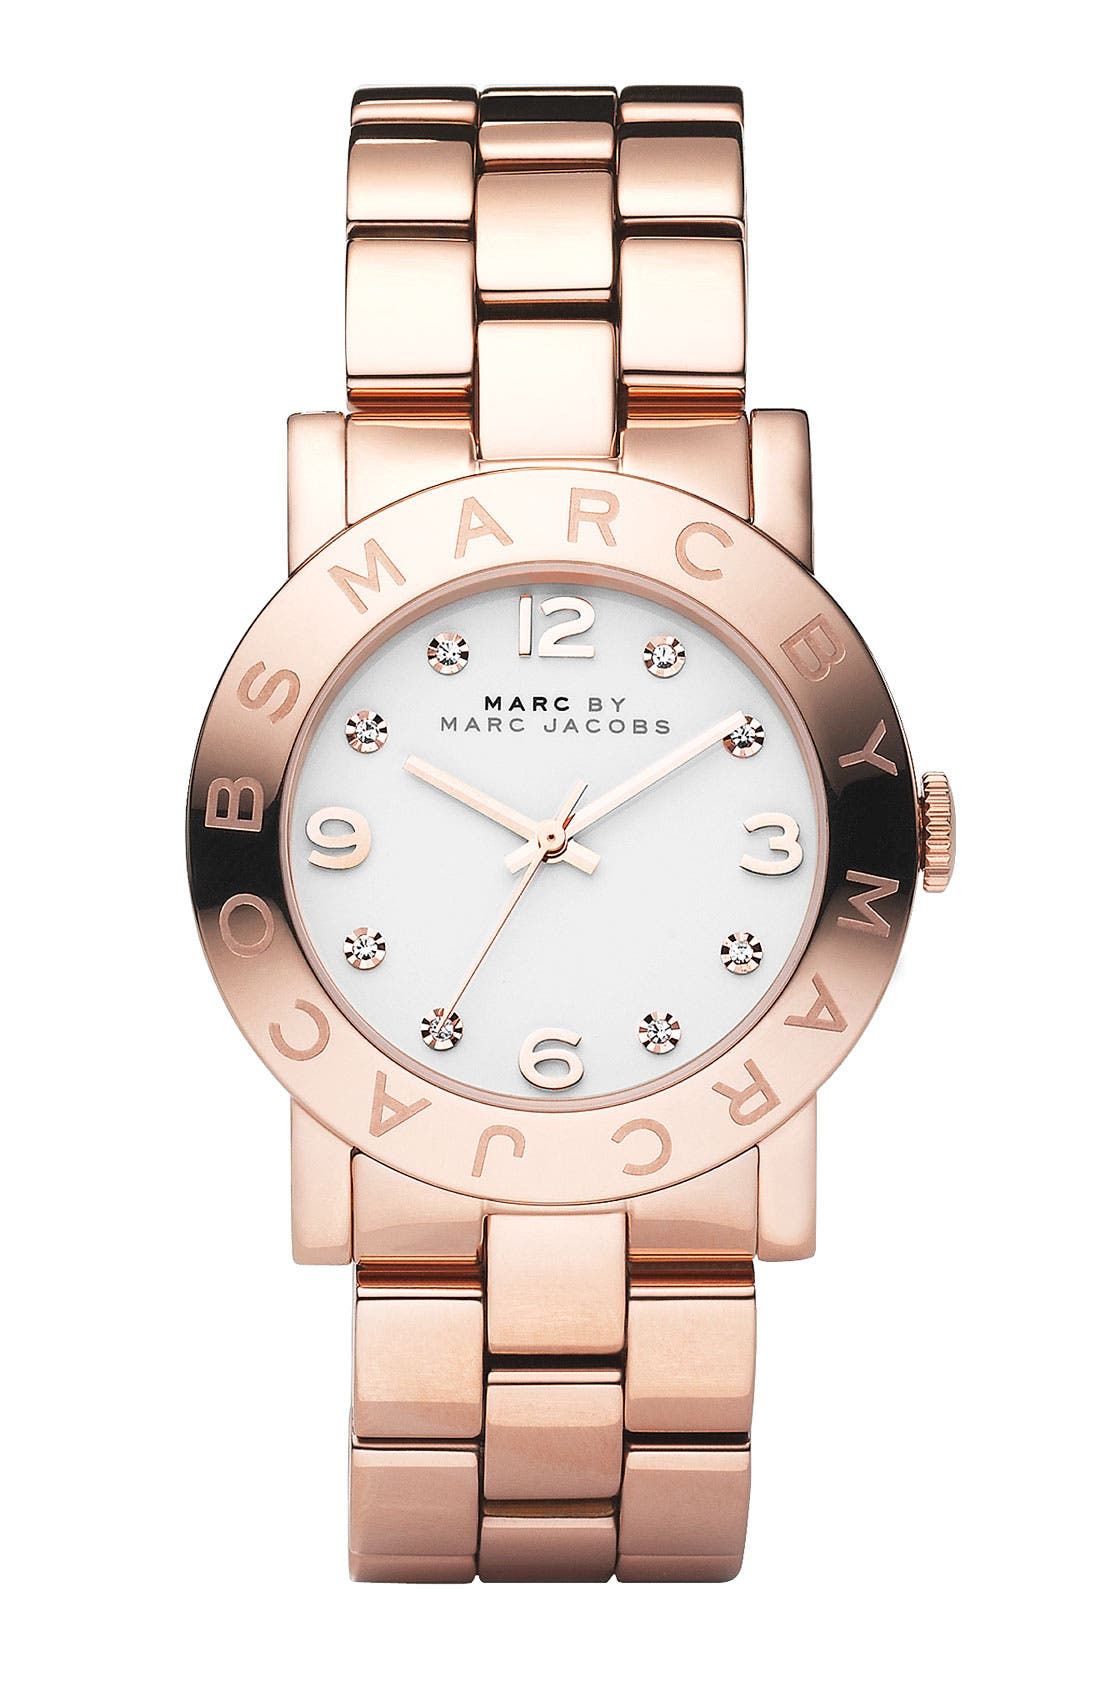 Main Image - MARC JACOBS 'Amy' Crystal Bracelet Watch, 36mm